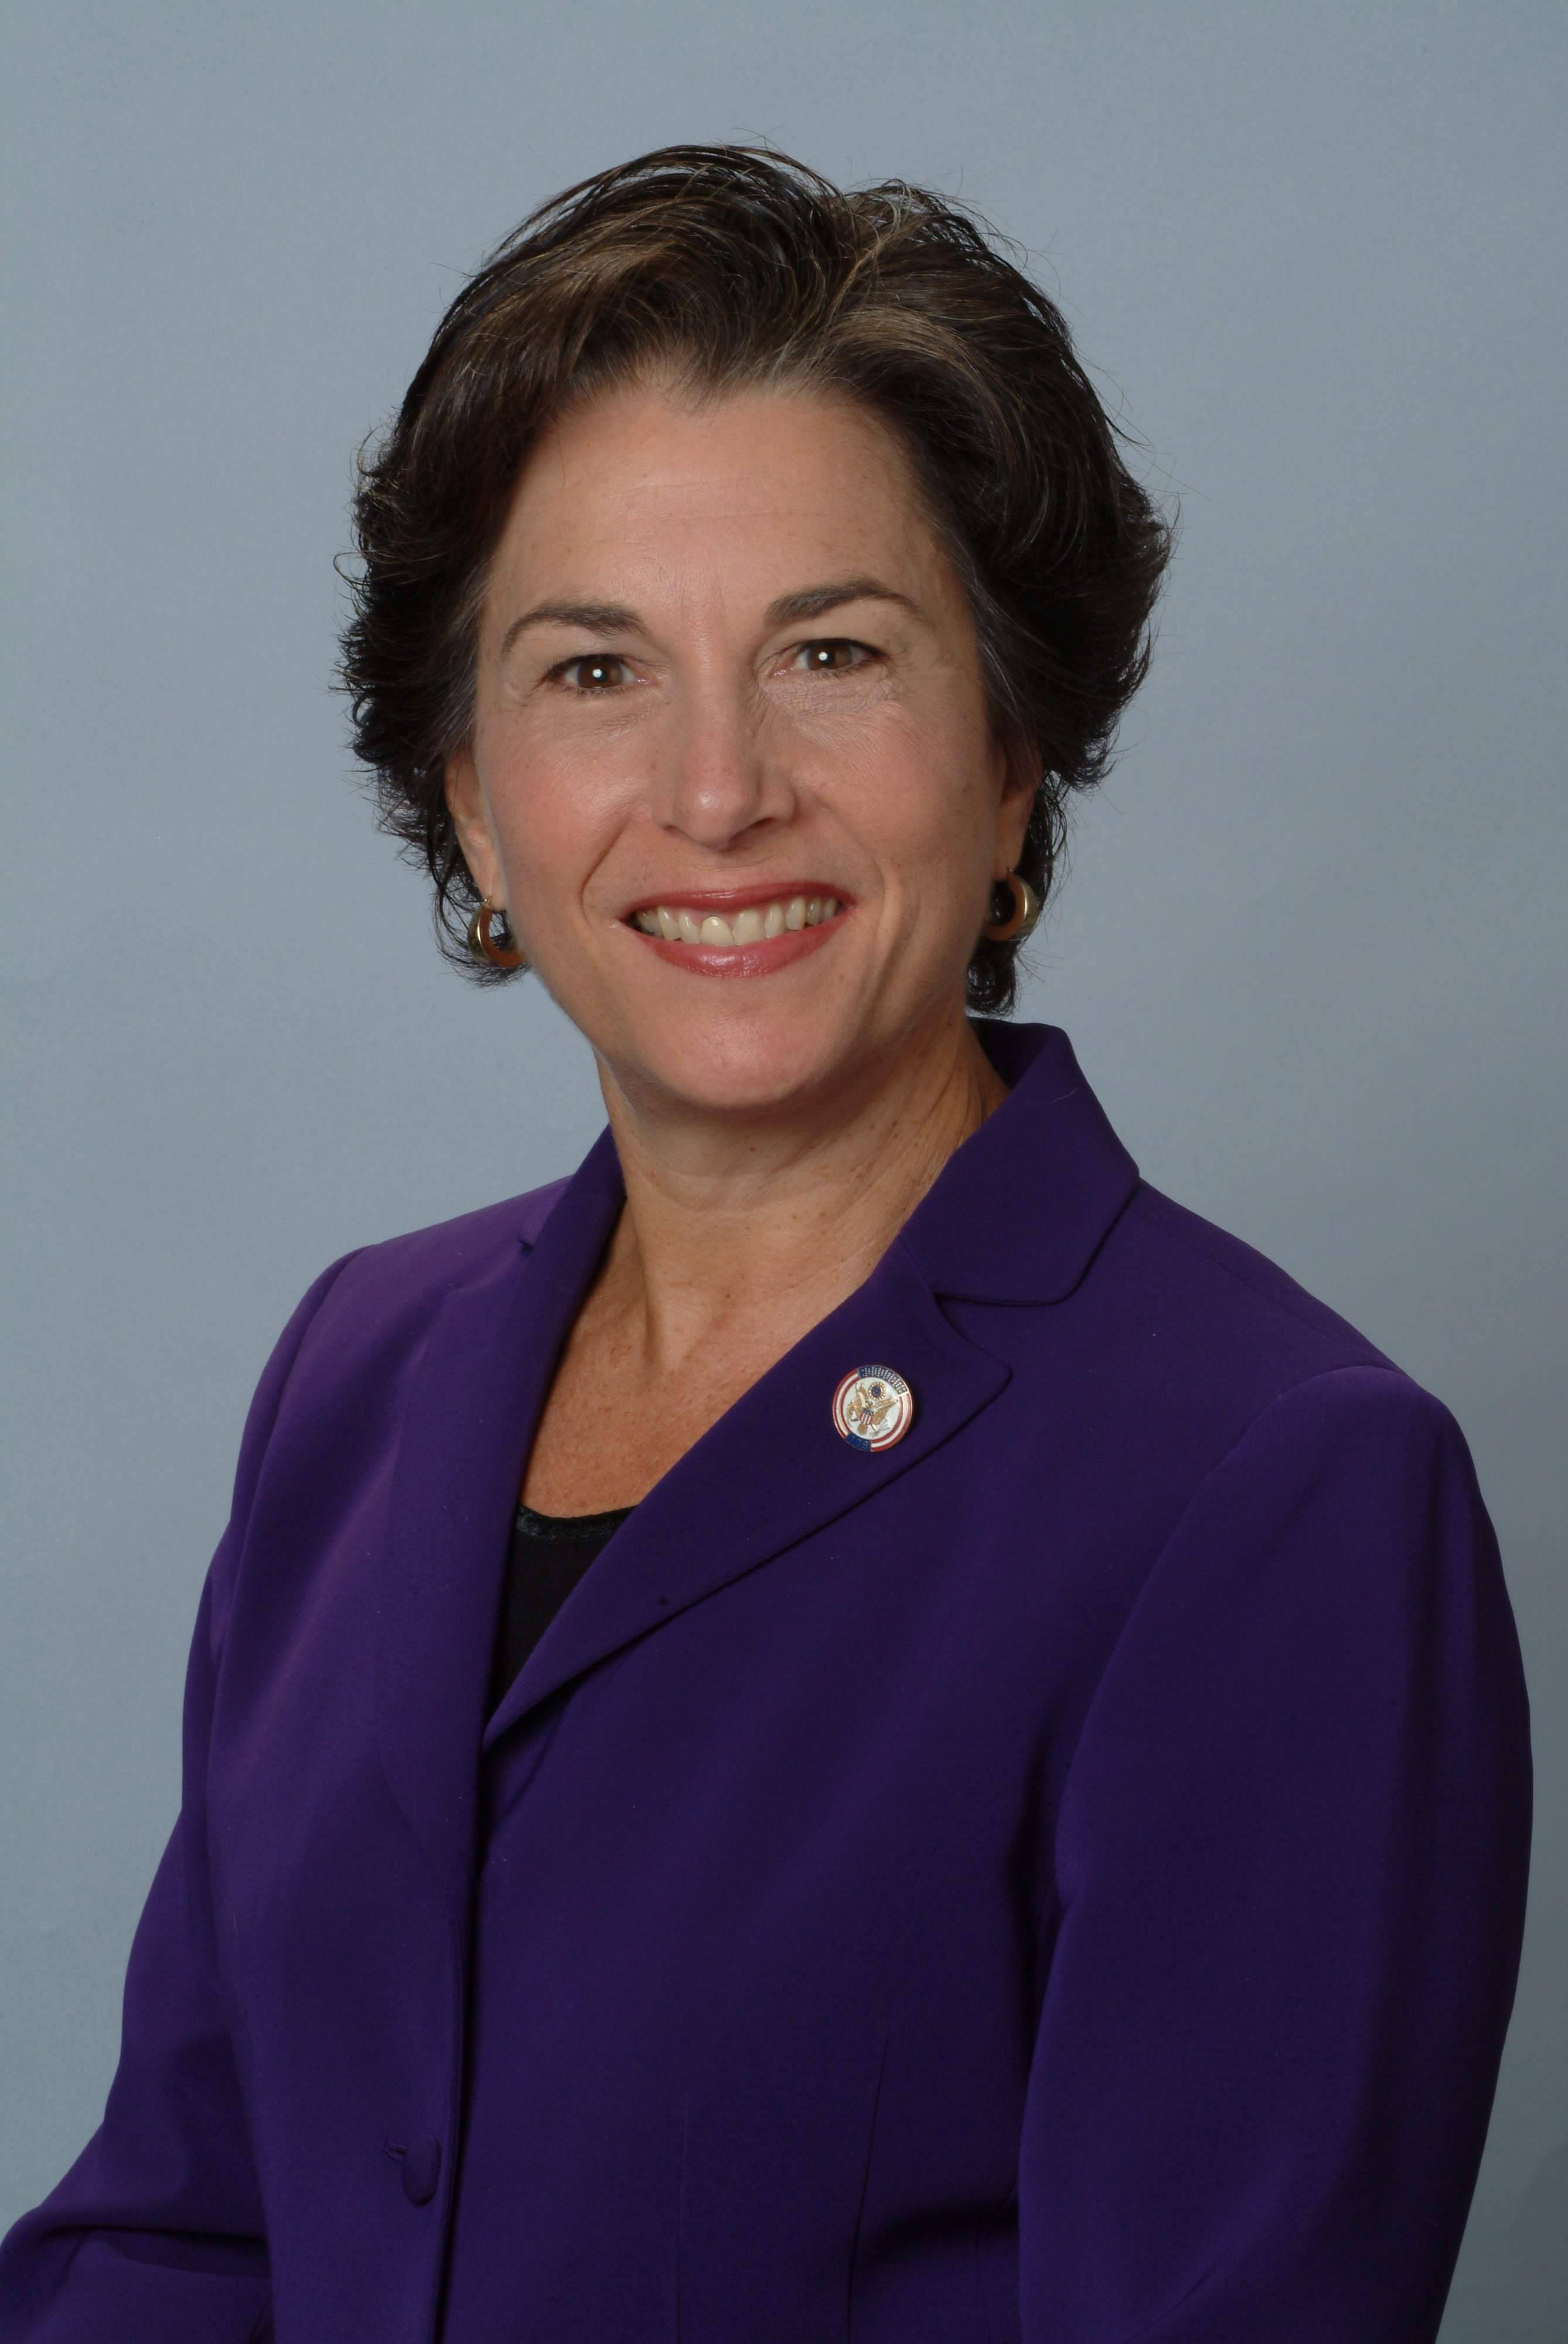 Jan Schakowsky, running for 9th District U.S. Representative